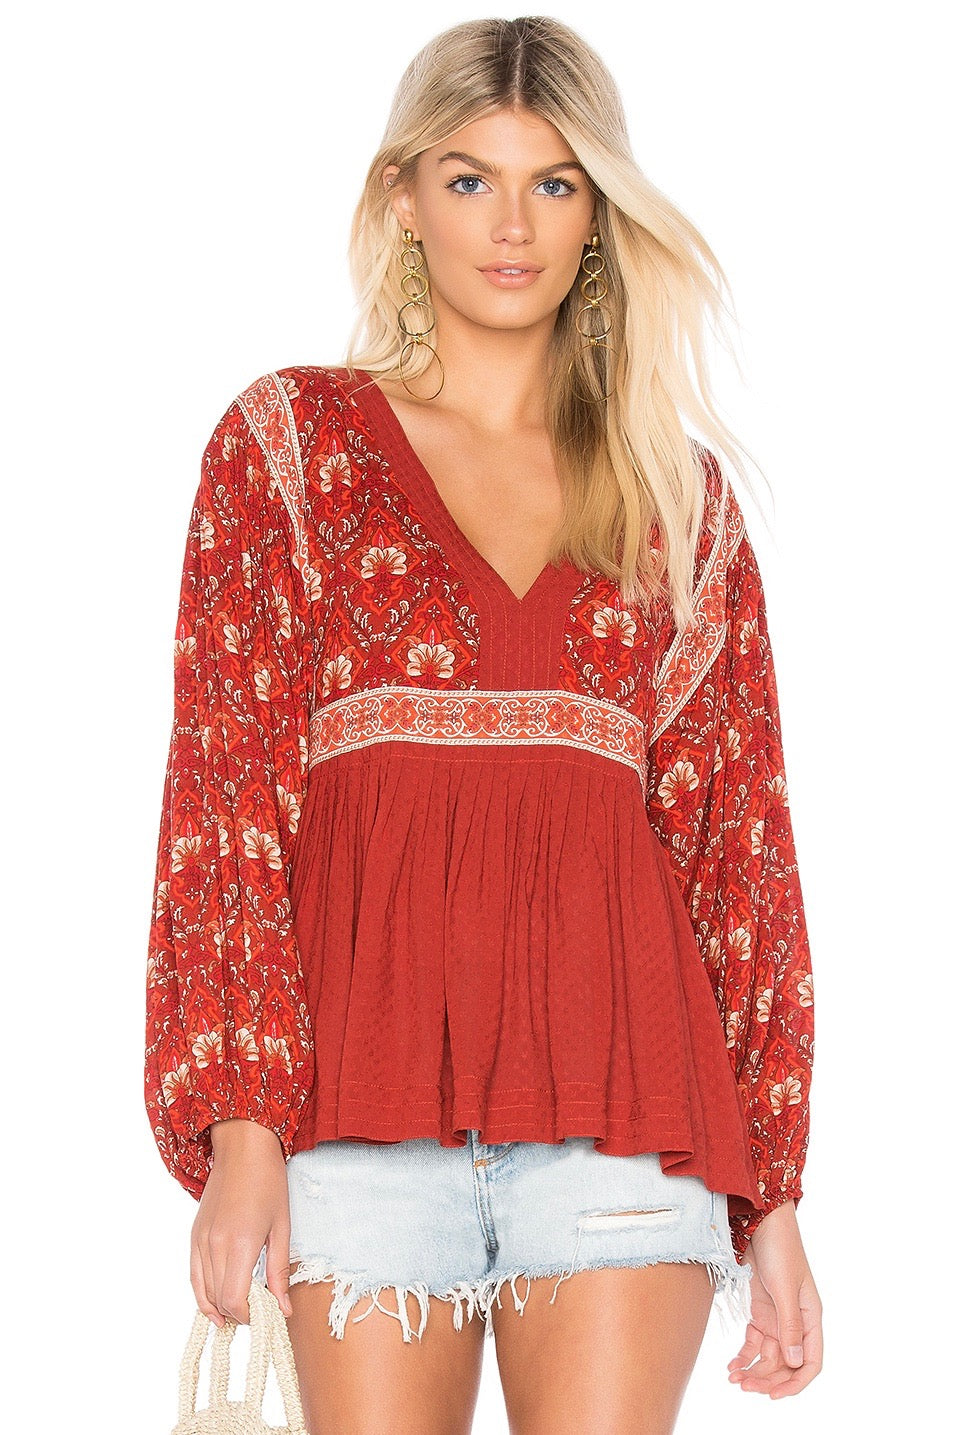 Amy Ethnic Blouse - Style Me Love